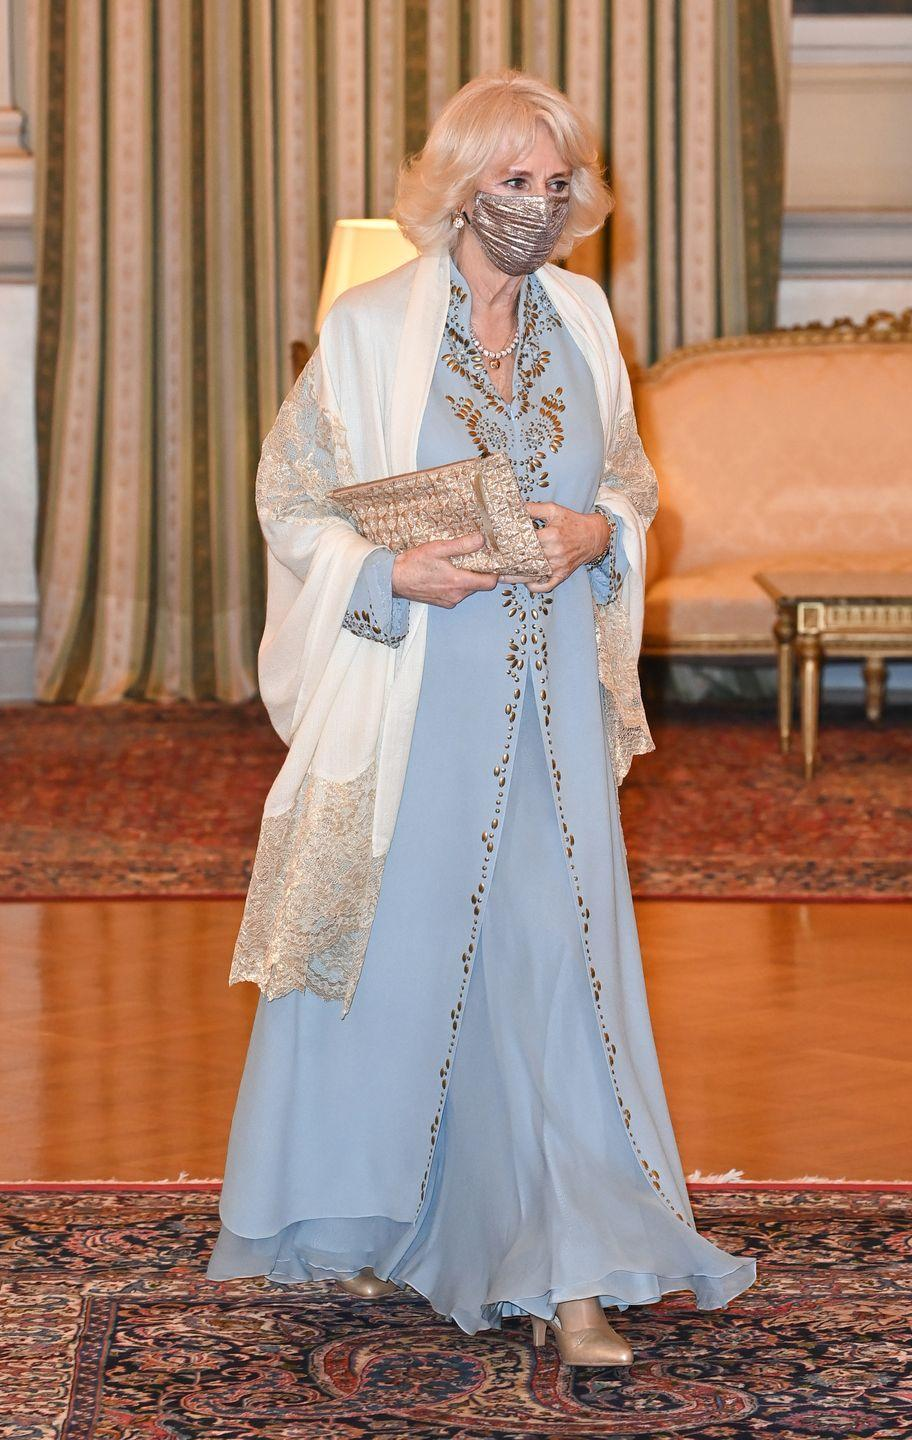 """<p>The Duchess of Cornwall stunned in a flowy light blue dress with gold detailing and a cream lace shawl for a reception on the first day of <a href=""""https://www.townandcountrymag.com/society/tradition/a35886831/prince-charles-camilla-royal-tour-greece-2021/"""" rel=""""nofollow noopener"""" target=""""_blank"""" data-ylk=""""slk:a trip to Athens"""" class=""""link rapid-noclick-resp"""">a trip to Athens</a> in <a href=""""https://www.townandcountrymag.com/society/tradition/g35936585/prince-charles-camilla-greece-photos-march-2021/"""" rel=""""nofollow noopener"""" target=""""_blank"""" data-ylk=""""slk:celebration of the 200th anniversary of Greek independence"""" class=""""link rapid-noclick-resp"""">celebration of the 200th anniversary of Greek independence</a>. She chose a matching shimmery gold clutch and a metallic gold face mask for the occasion, which was hosted by the President of Greece.</p>"""